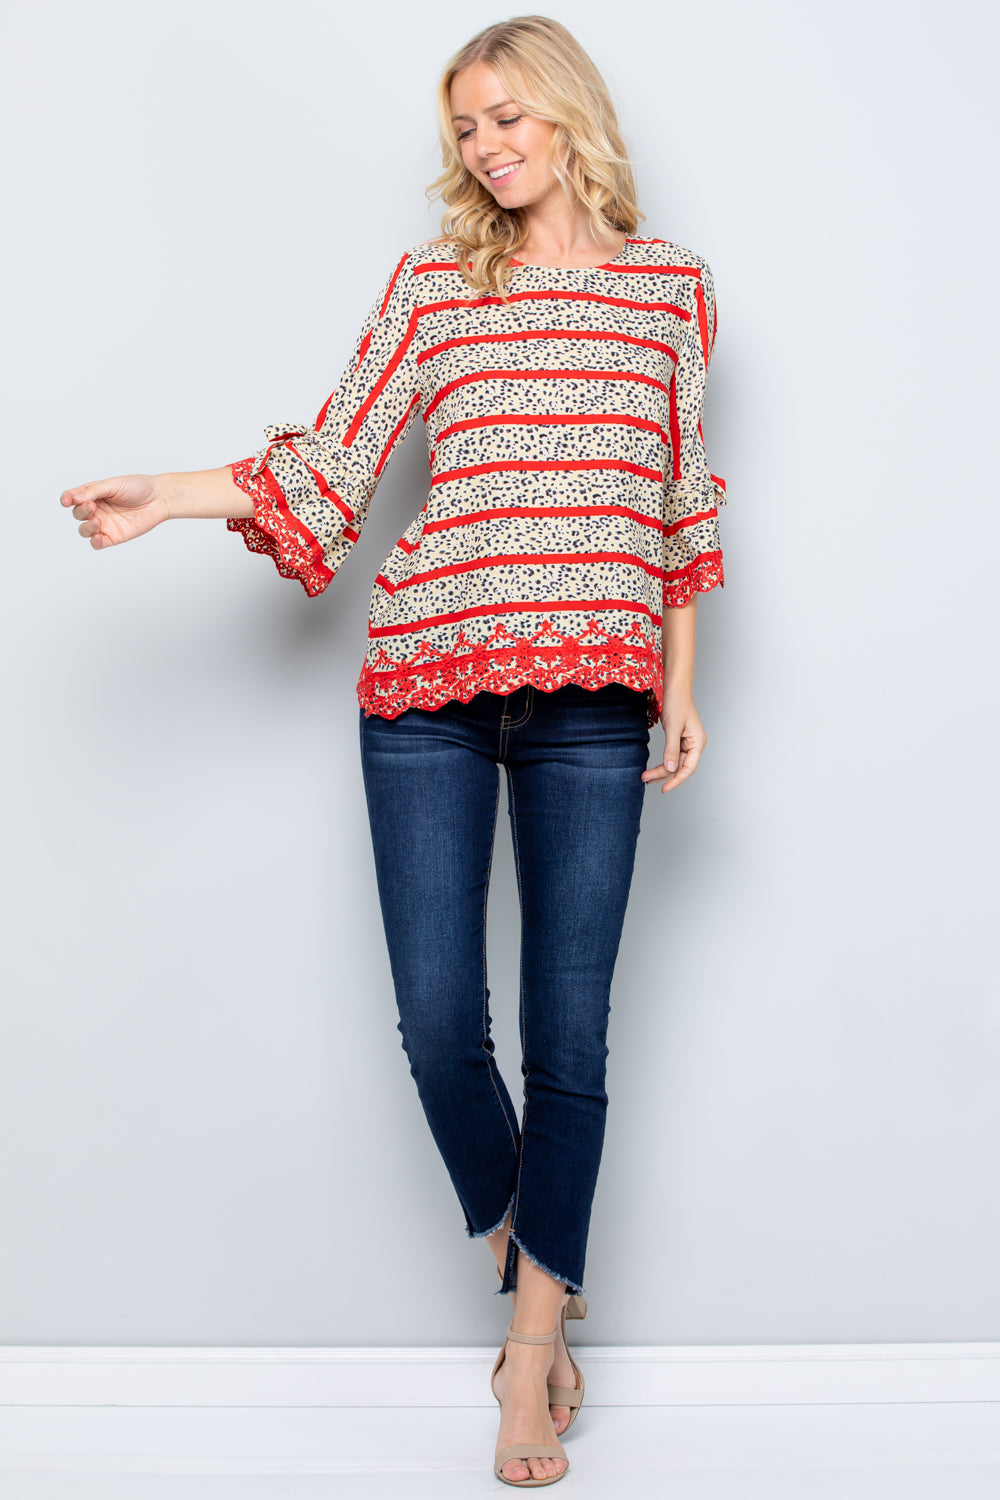 T2837 Scallop Embroidery Bell Sleeve Top - Cream/Red